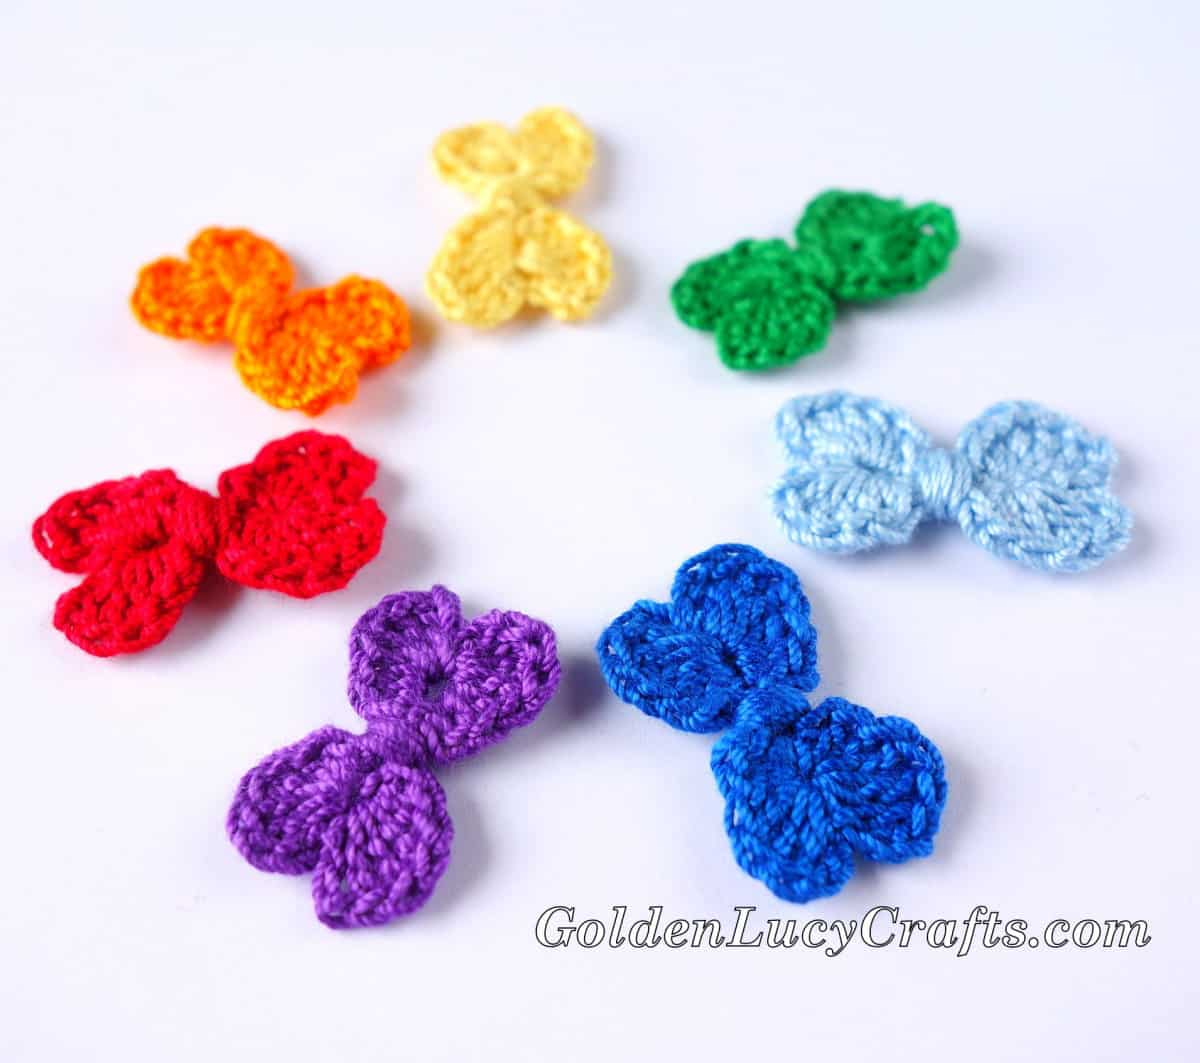 Crochet small bows in colors of rainbow.